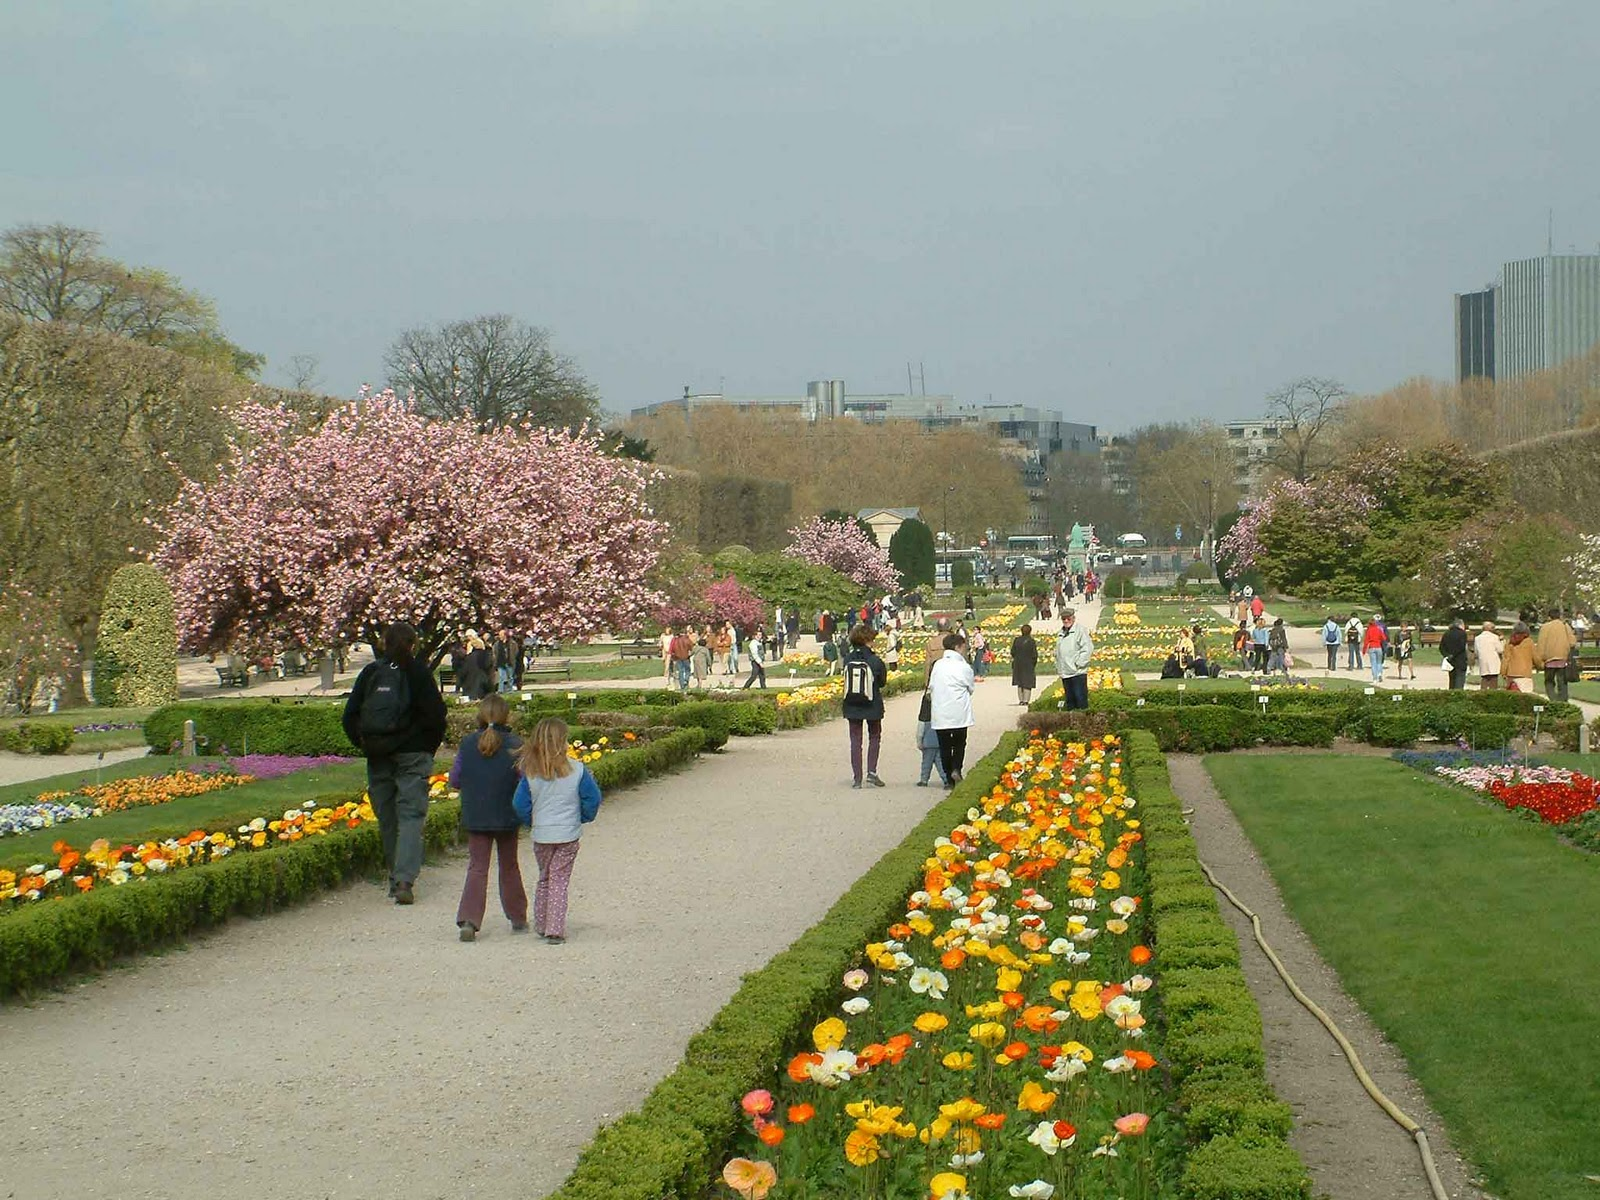 So if you are interested then please come to this park for Jardin plantes paris